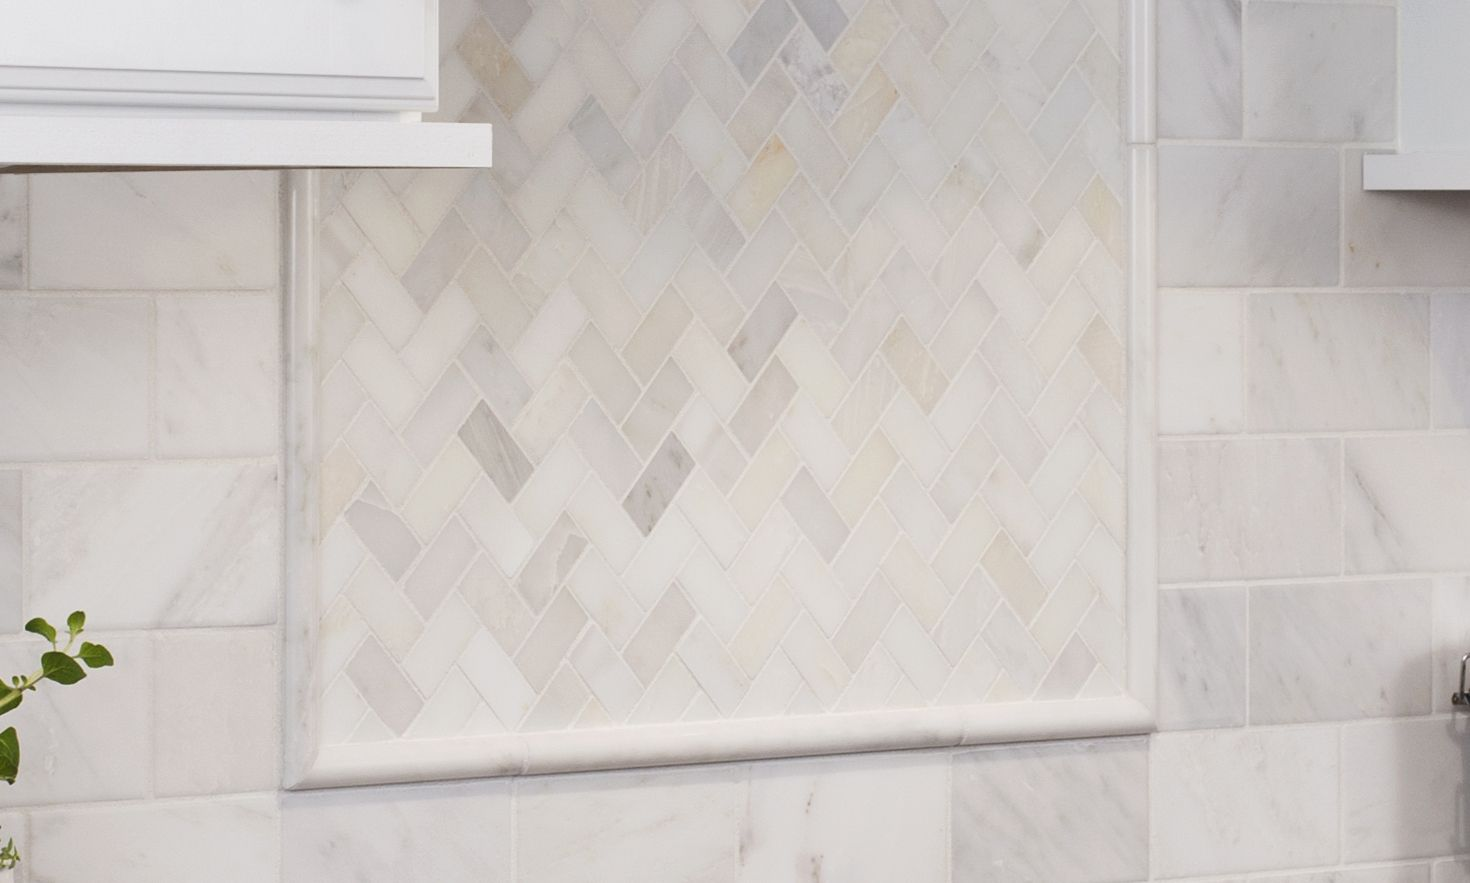 The Marble Subway Tile With A Framed Herringbone Accent Above The